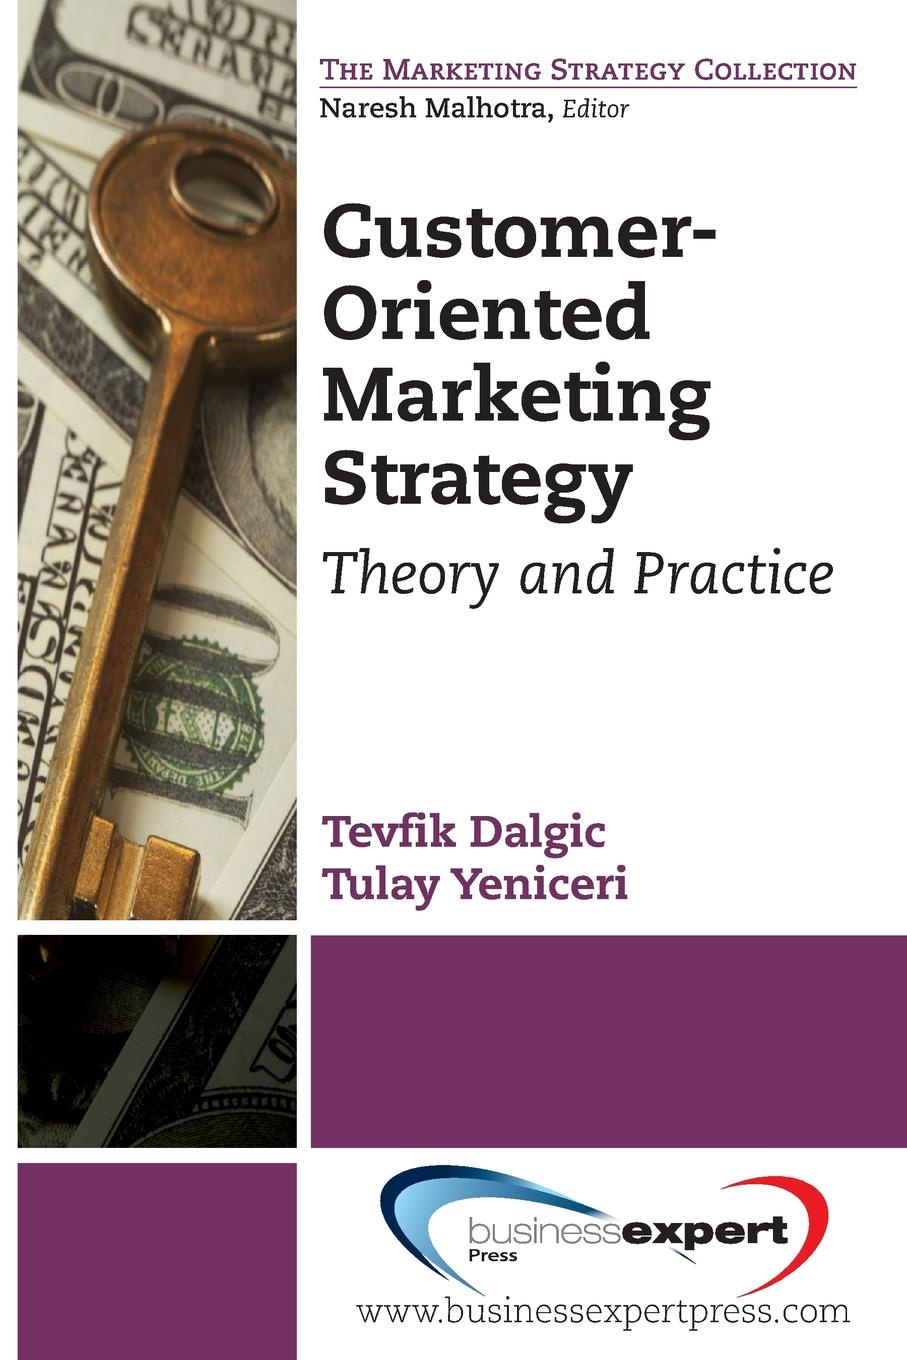 Customer-Oriented Marketing Strategy. Theory and Practice What is customer orientation? And how does it fit in your idea of...